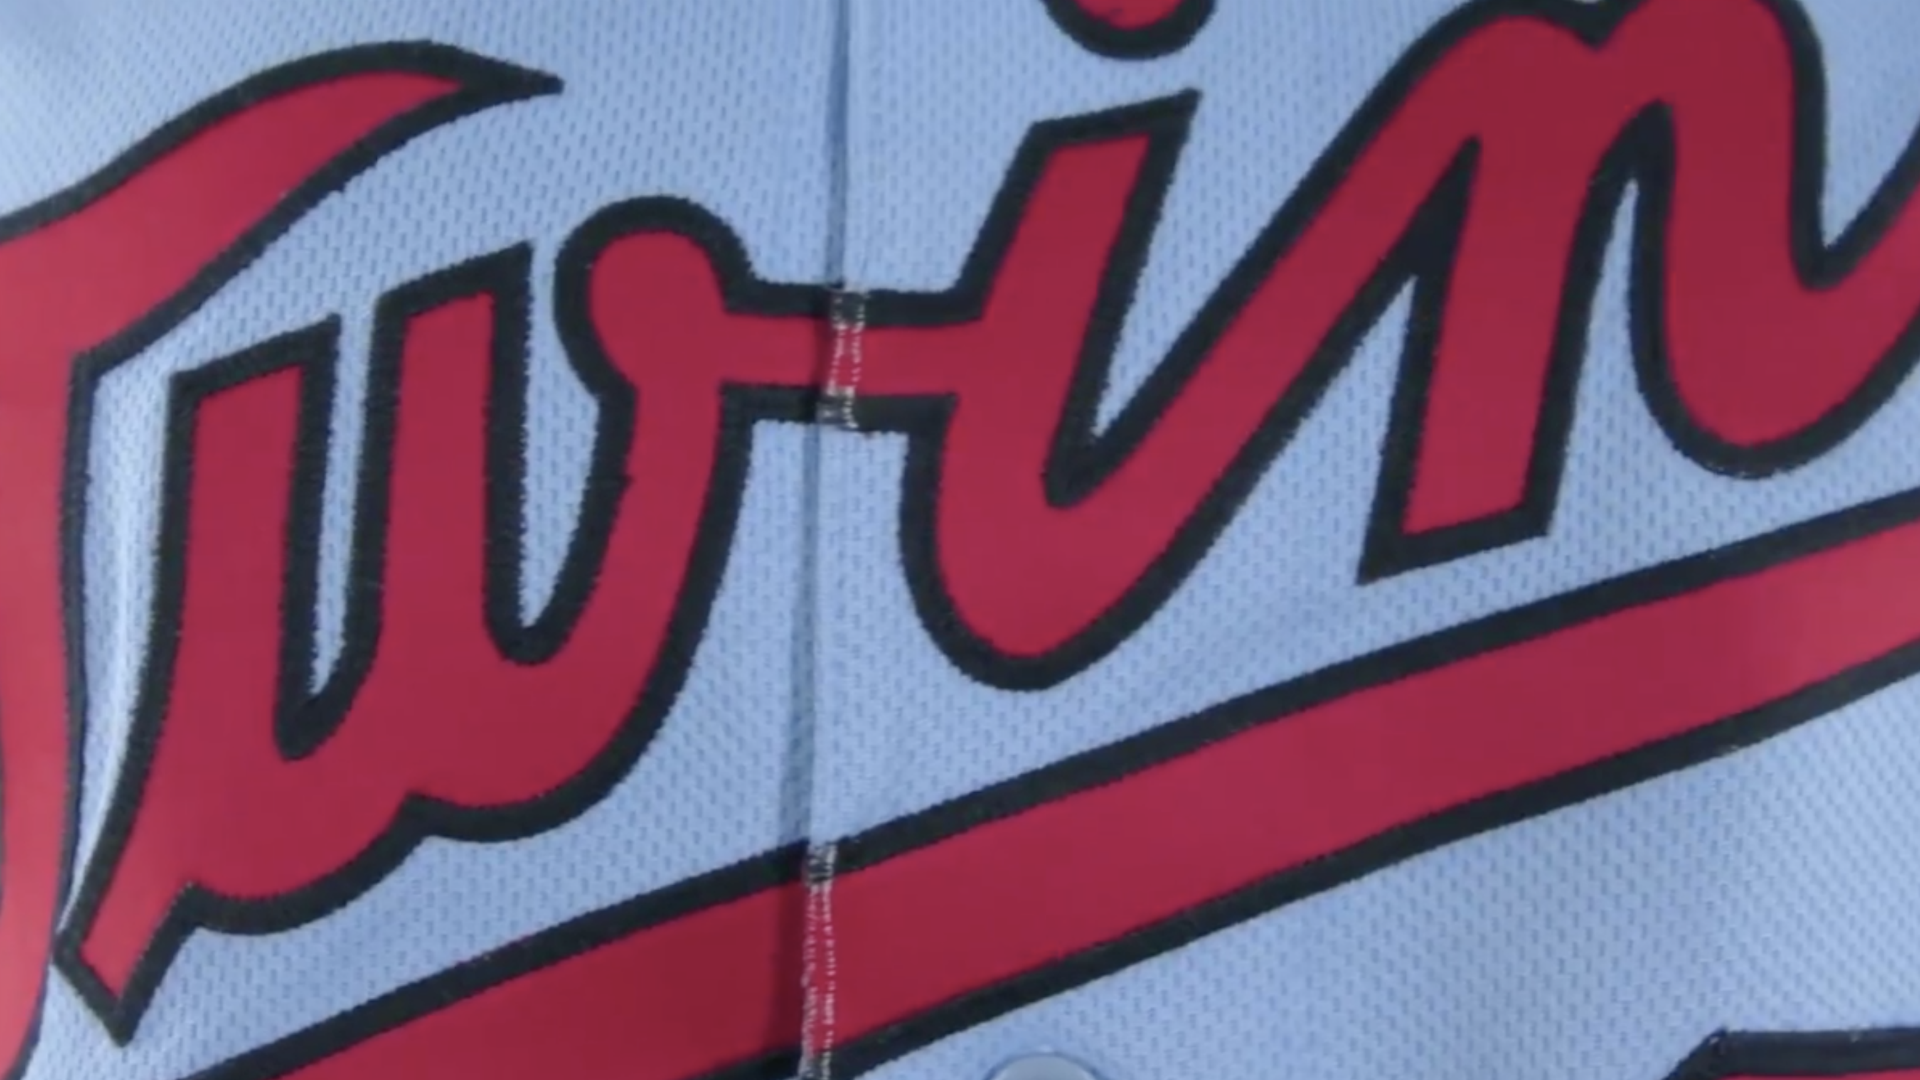 The Twins introduced new throwback alternate uniforms, and they are just delightful